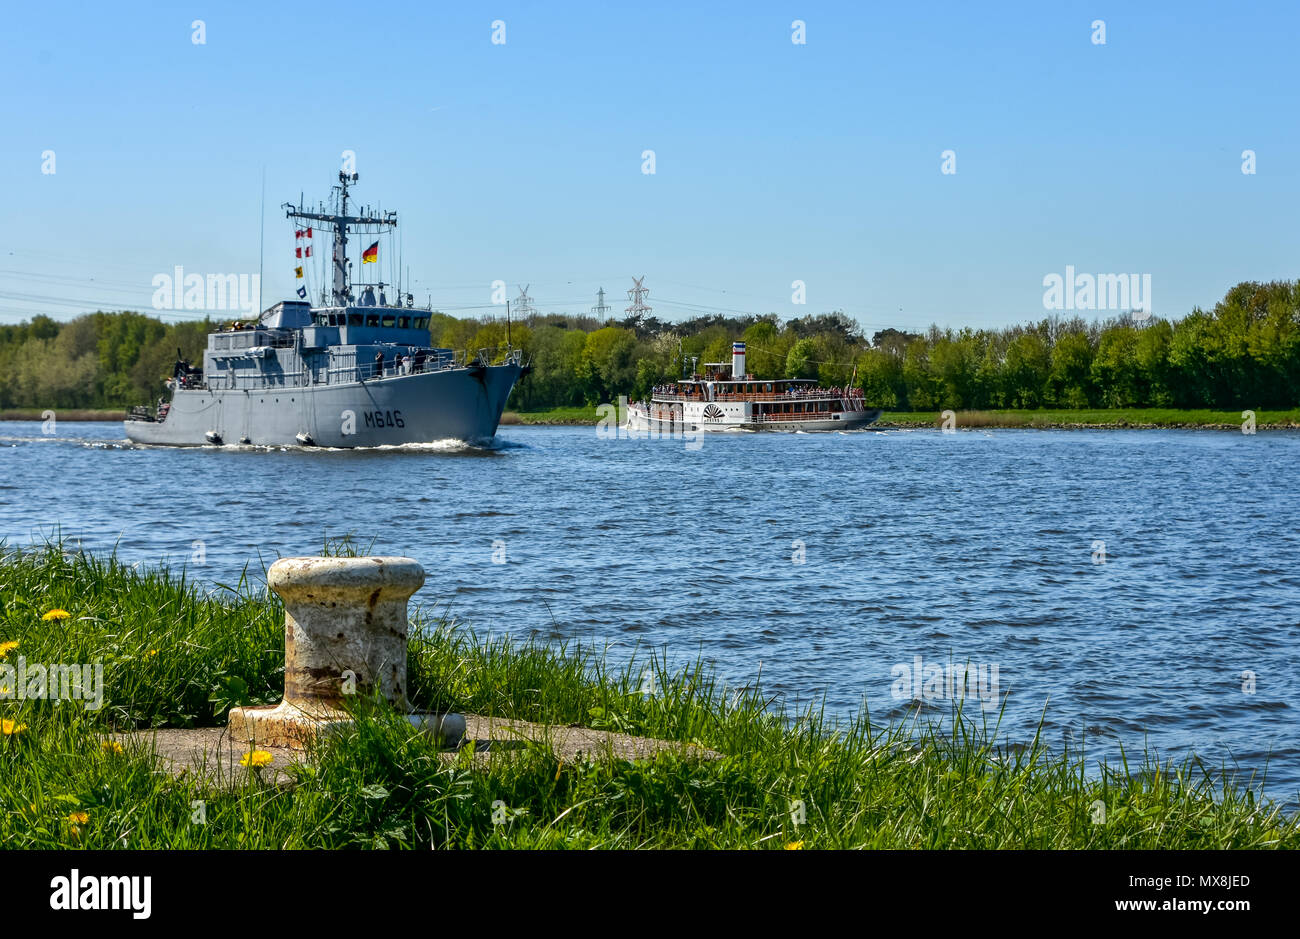 Ships in the canal. Different perspective and ship types. Passenger and container ships. - Stock Image